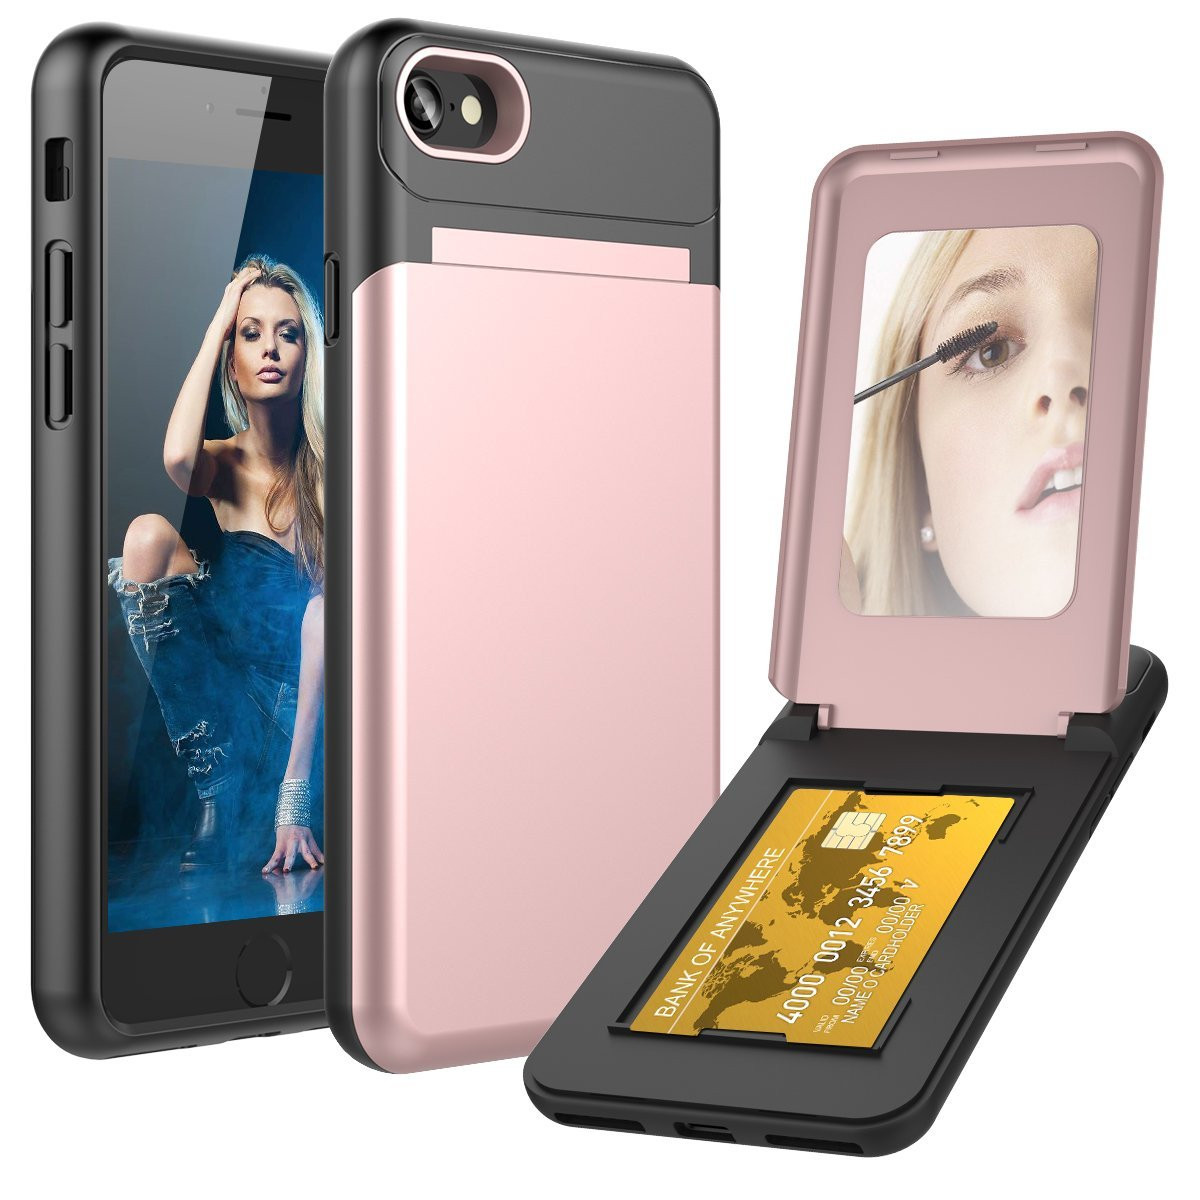 Apple iPhone 6 -  Hard Phone Case with Hidden Mirror and Card Holder Compartment, Rose Gold/Black